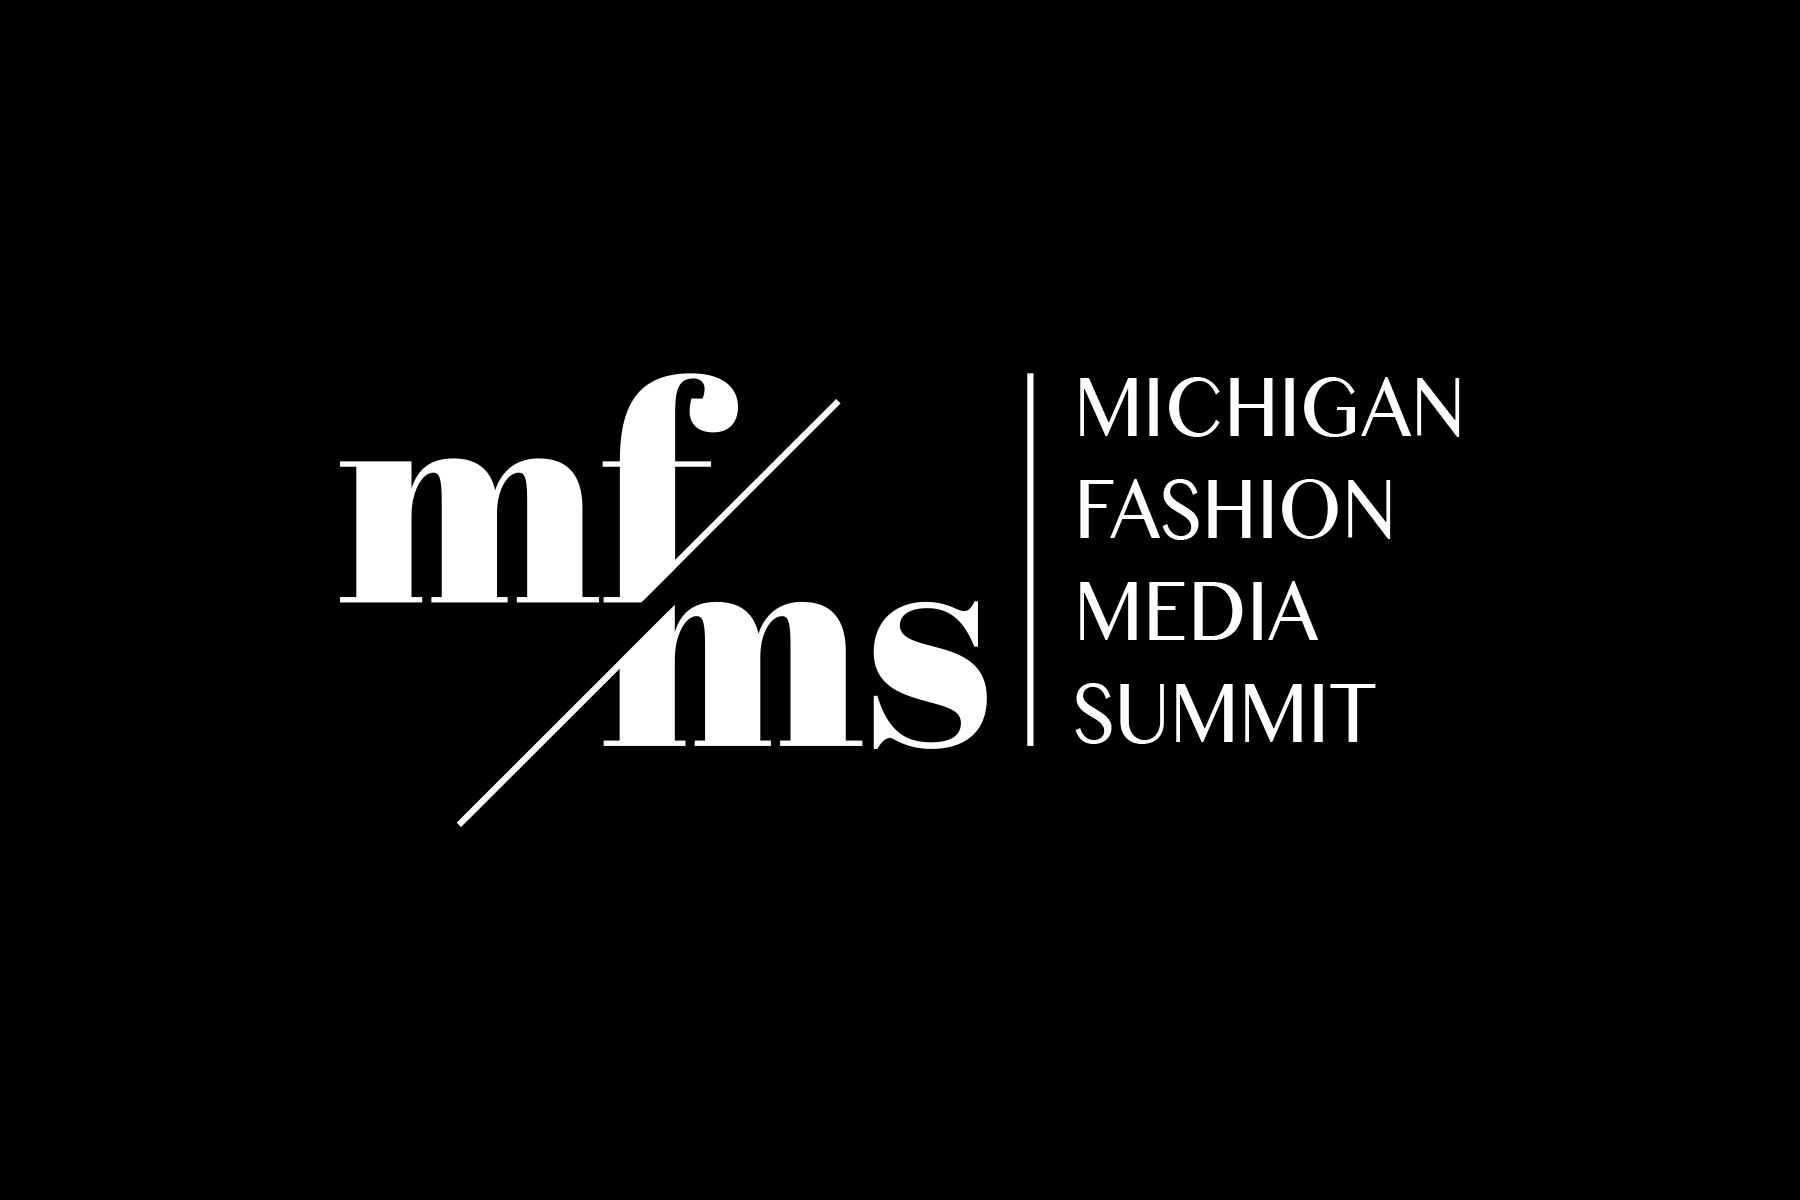 MFMS_LOGO_white_on_black.jpg